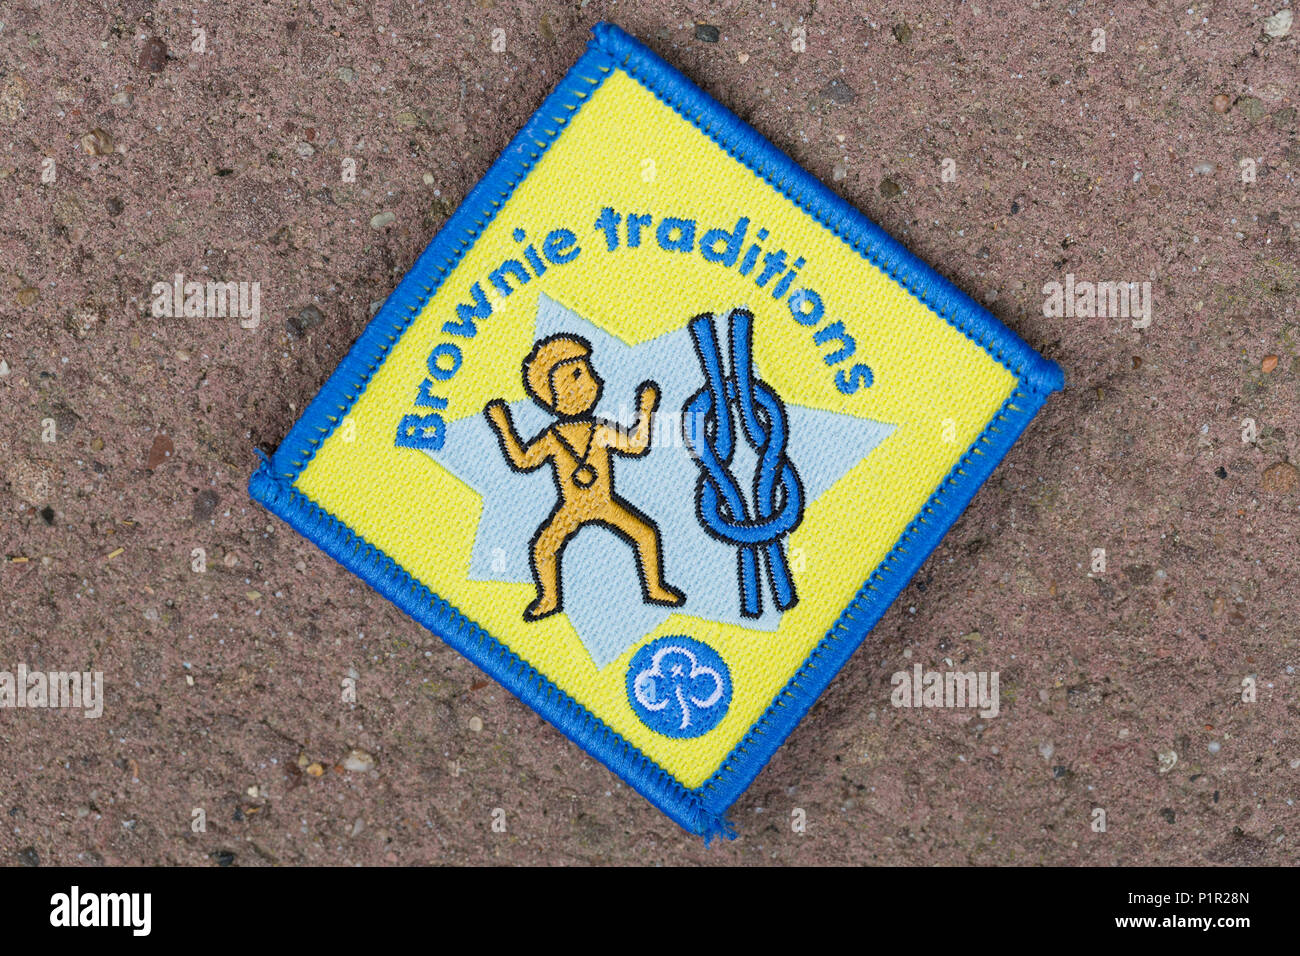 Tradiciones Brownie Girl Guide / Brownies badge Imagen De Stock